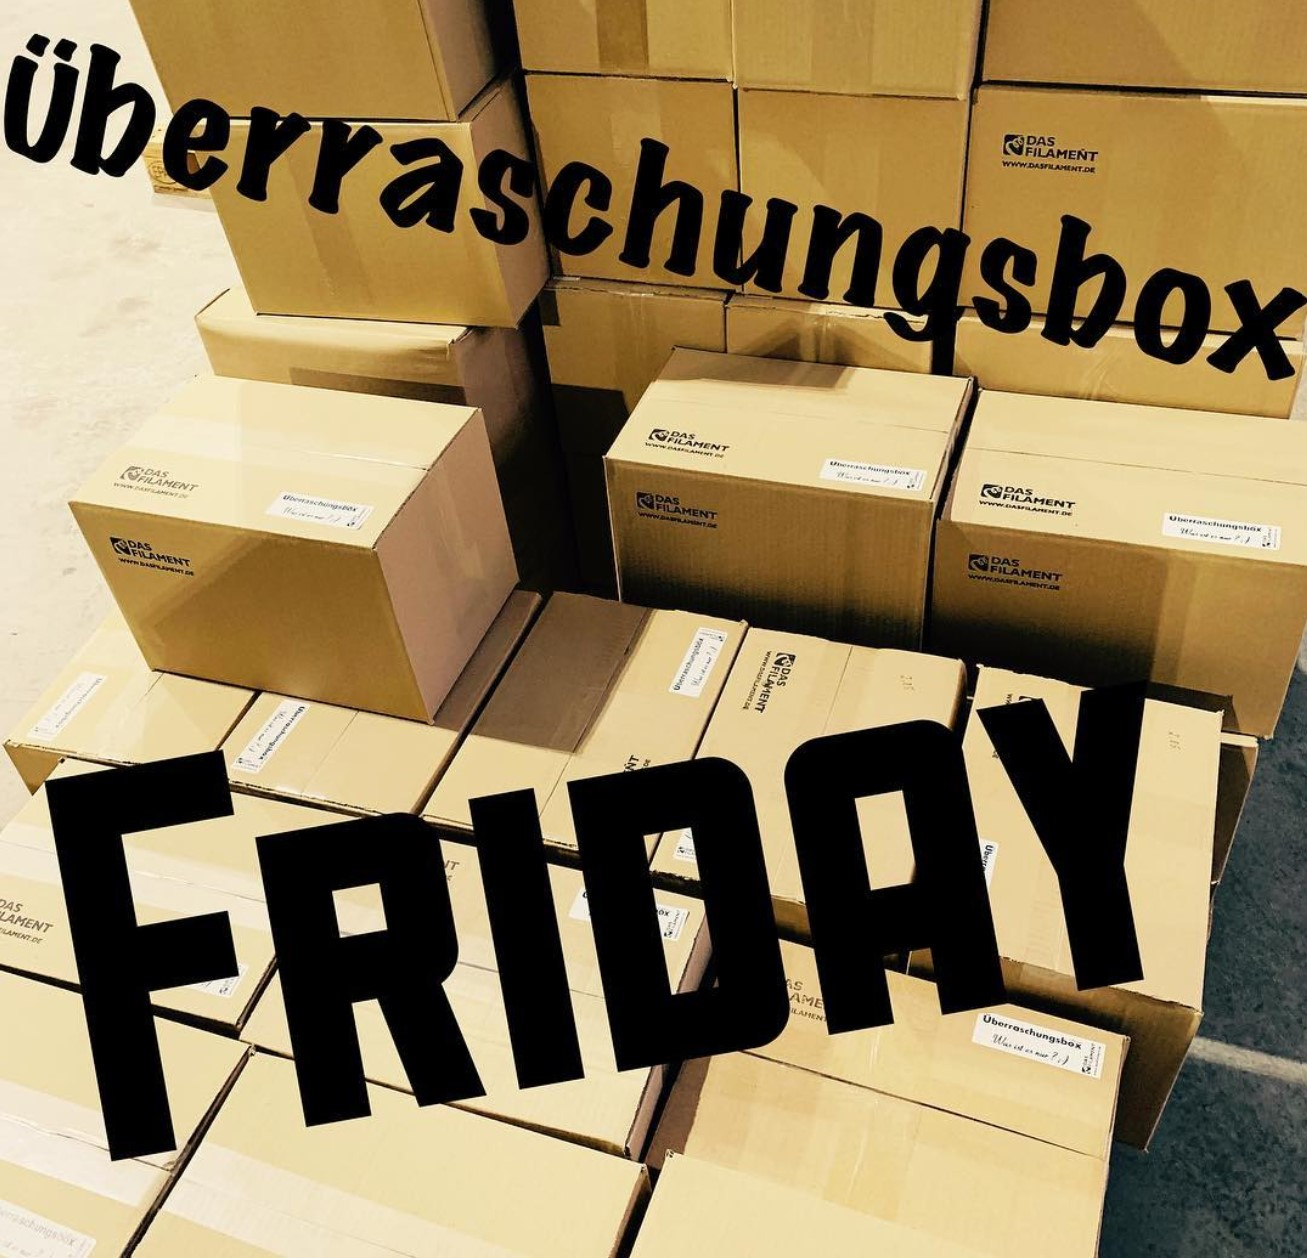 Black Überraschungsbox Friday!